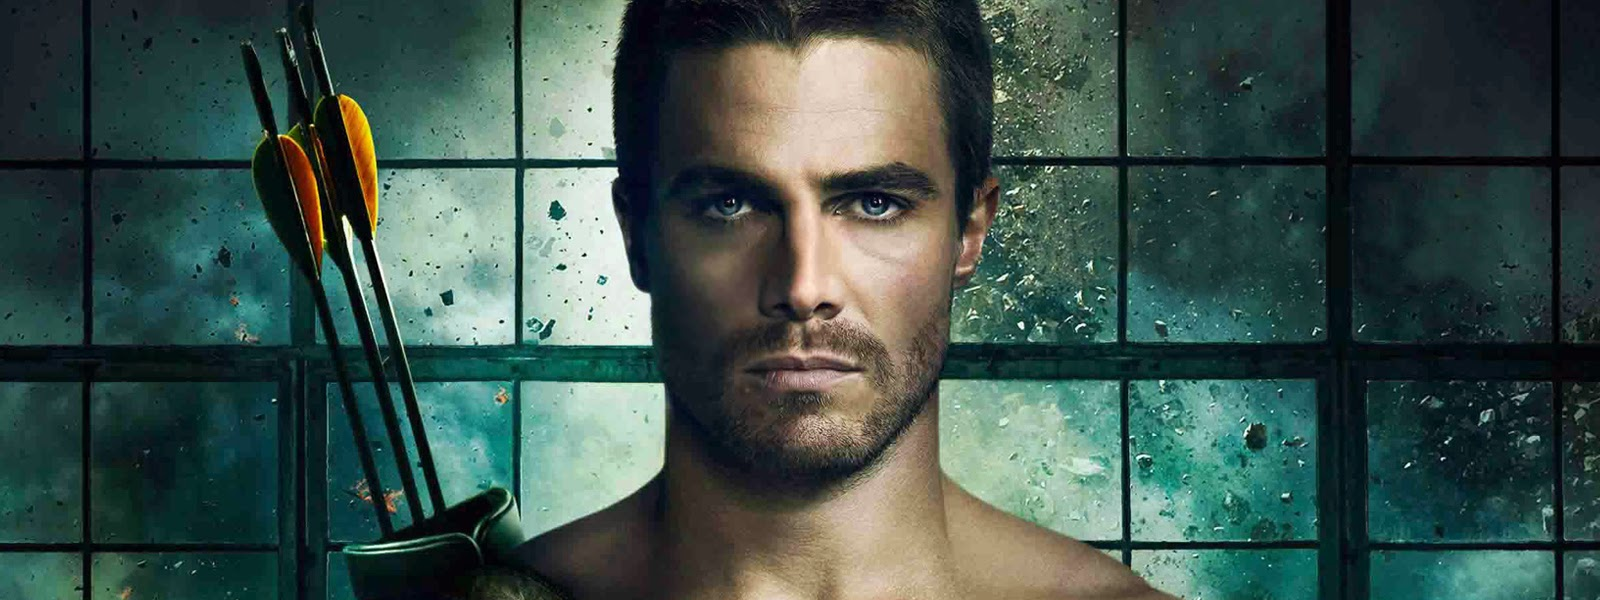 Arrow - Season 3 - Stephen Amell Talks Arrow & Justice League